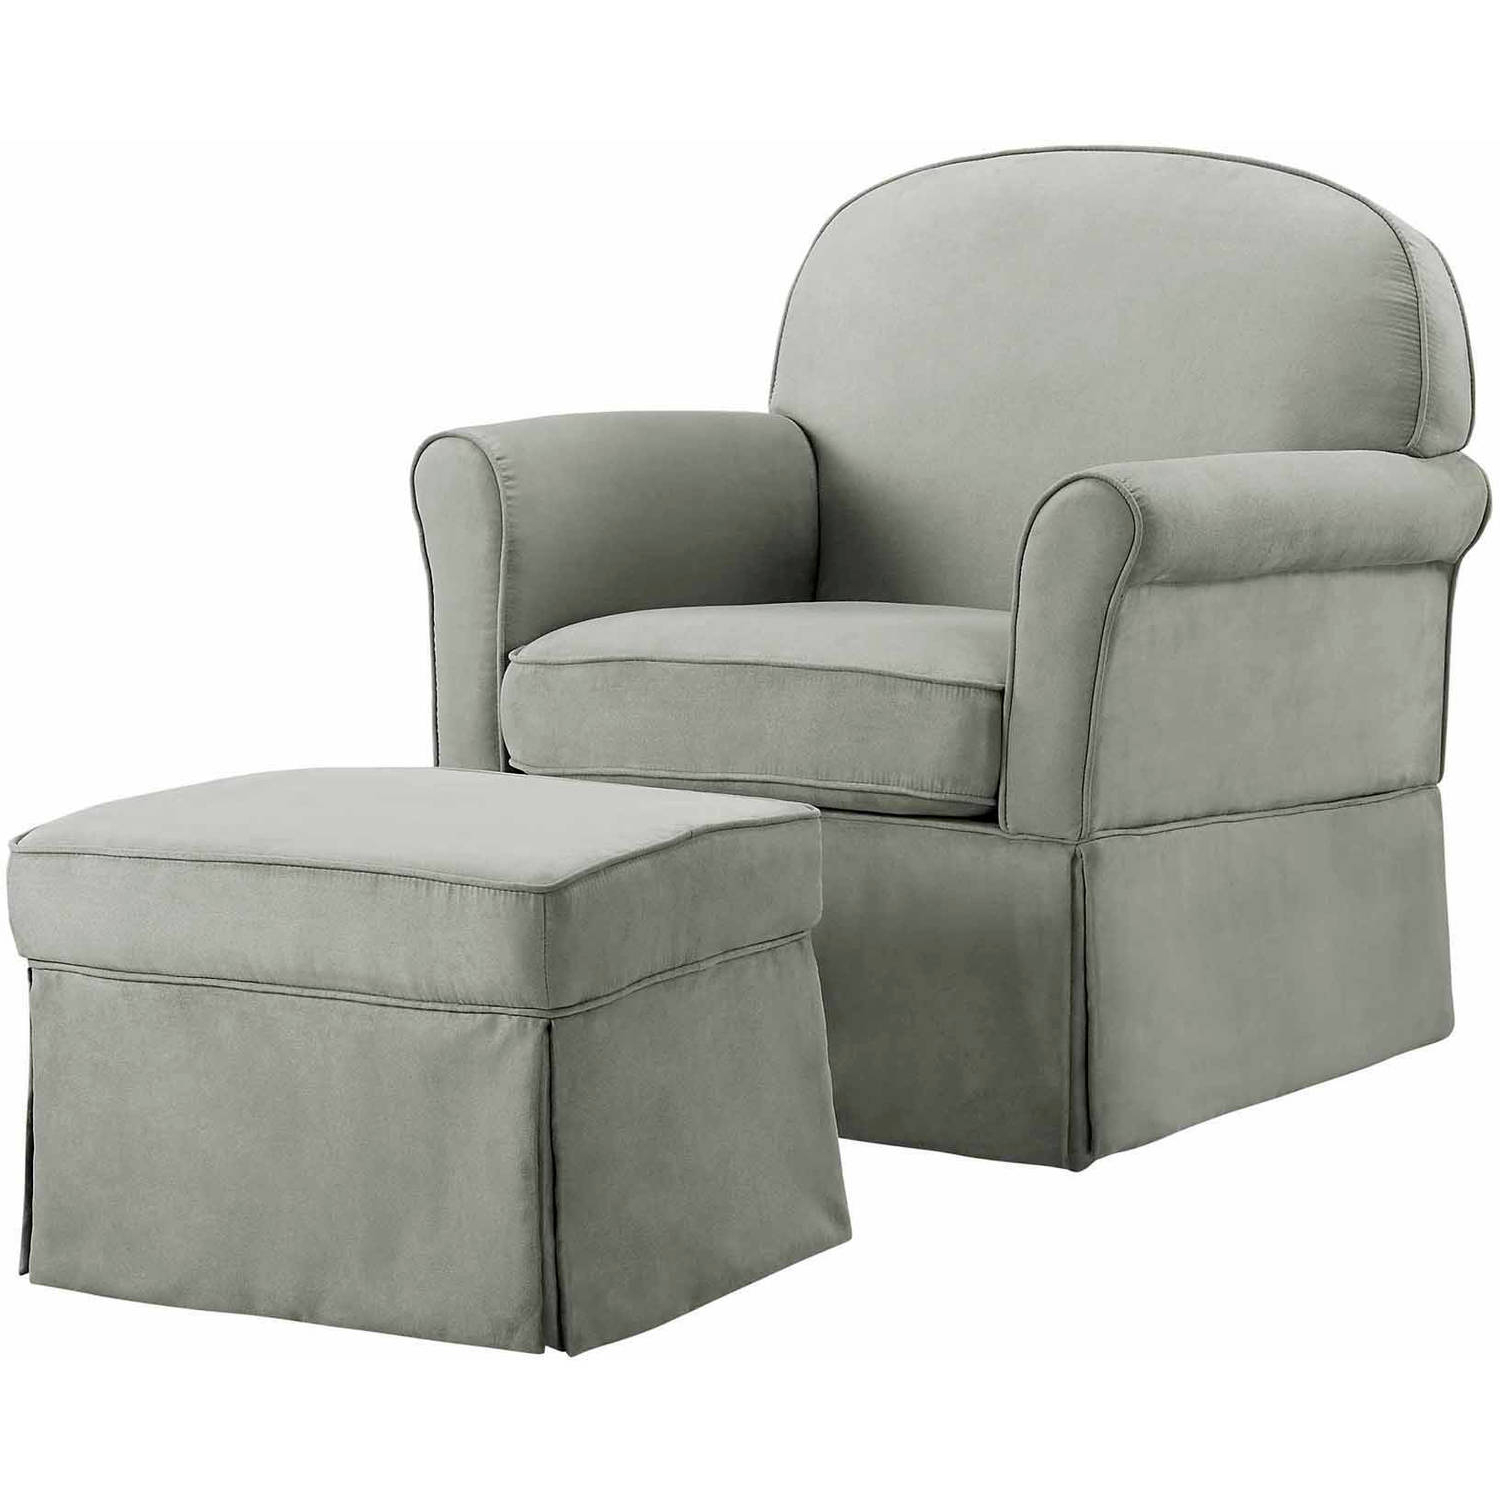 Baby Relax Evan Swivel Glider And Ottoman Gray – Walmart Inside Well Liked Abbey Swivel Glider Recliners (View 4 of 20)